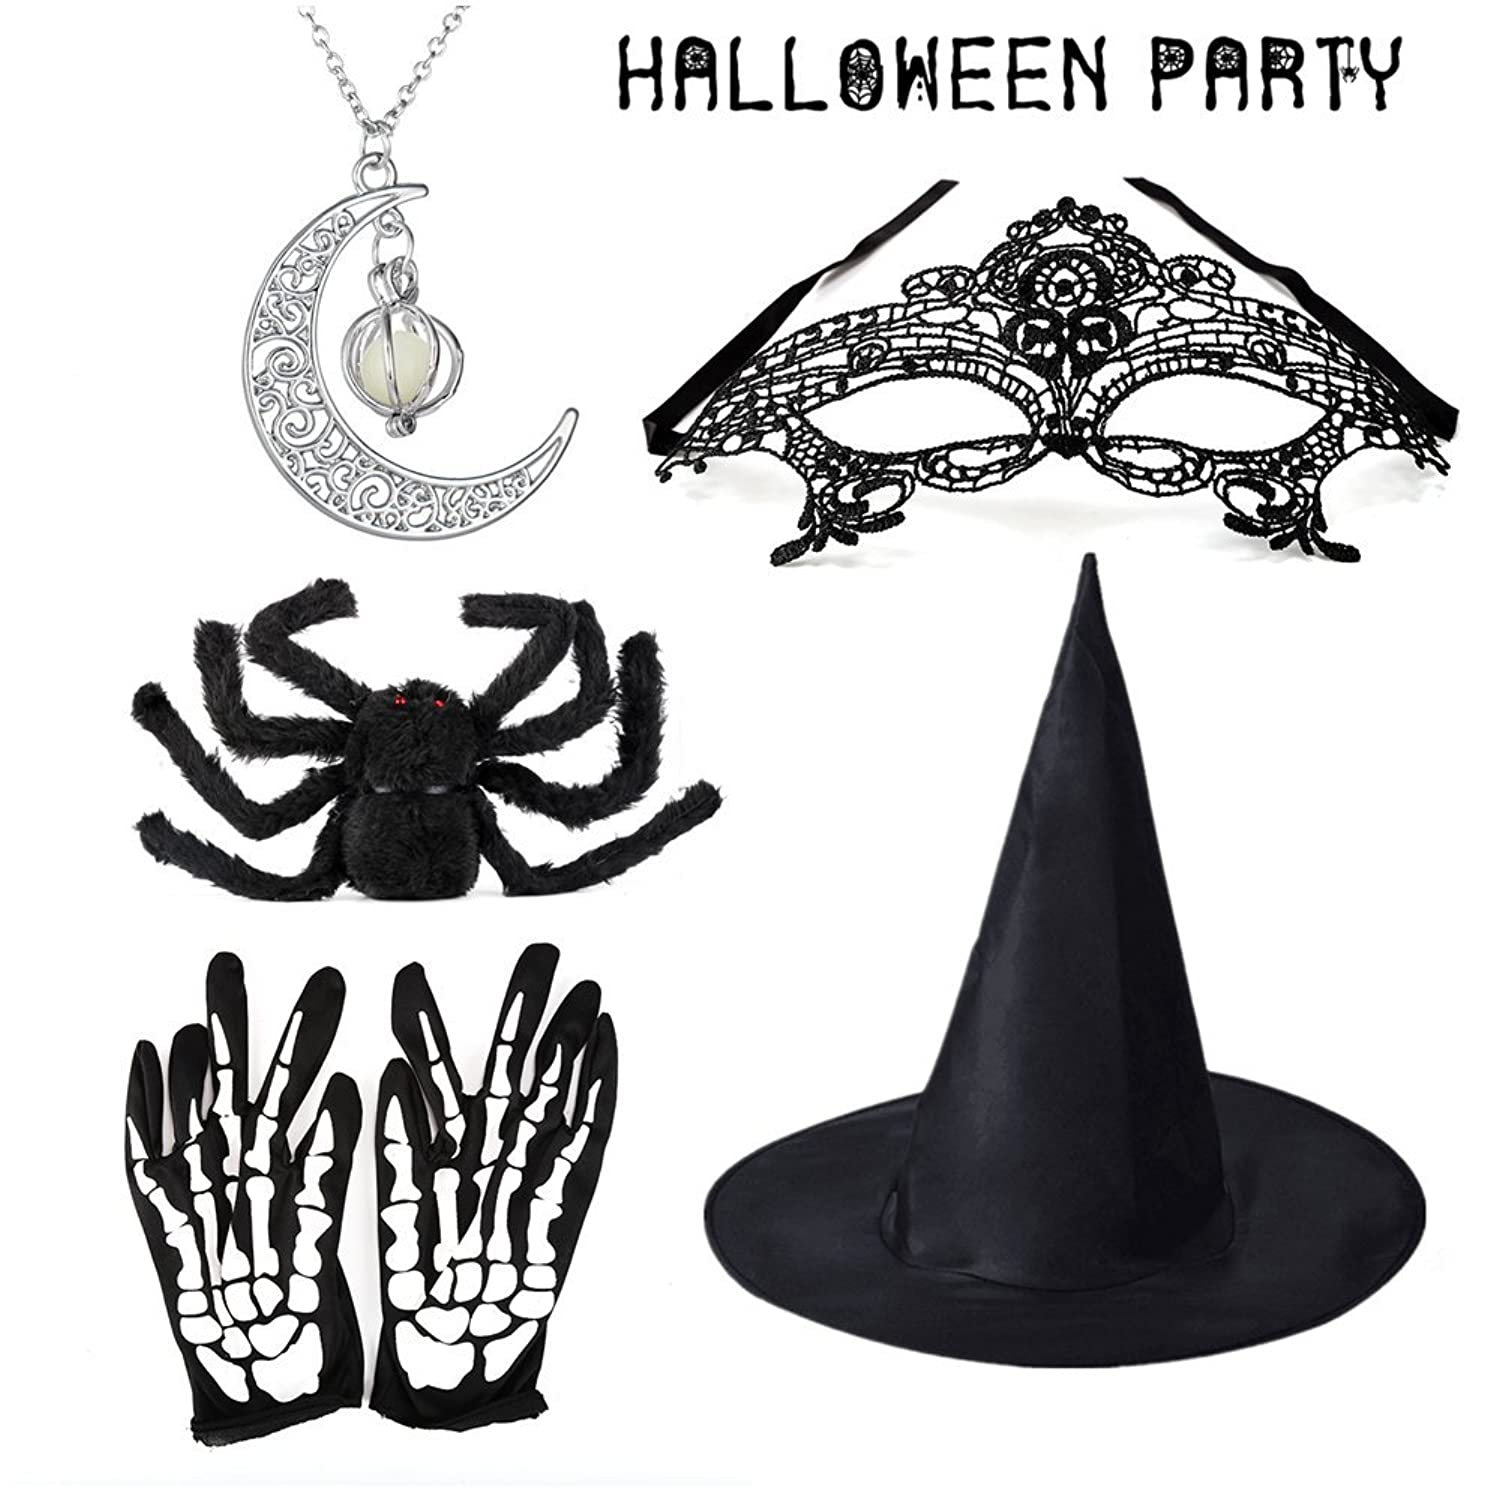 Amazoncom Halloween Prop Kits,Witch Hatglowing Necklaceblack Spidermaskskeleton Gloves Clothing